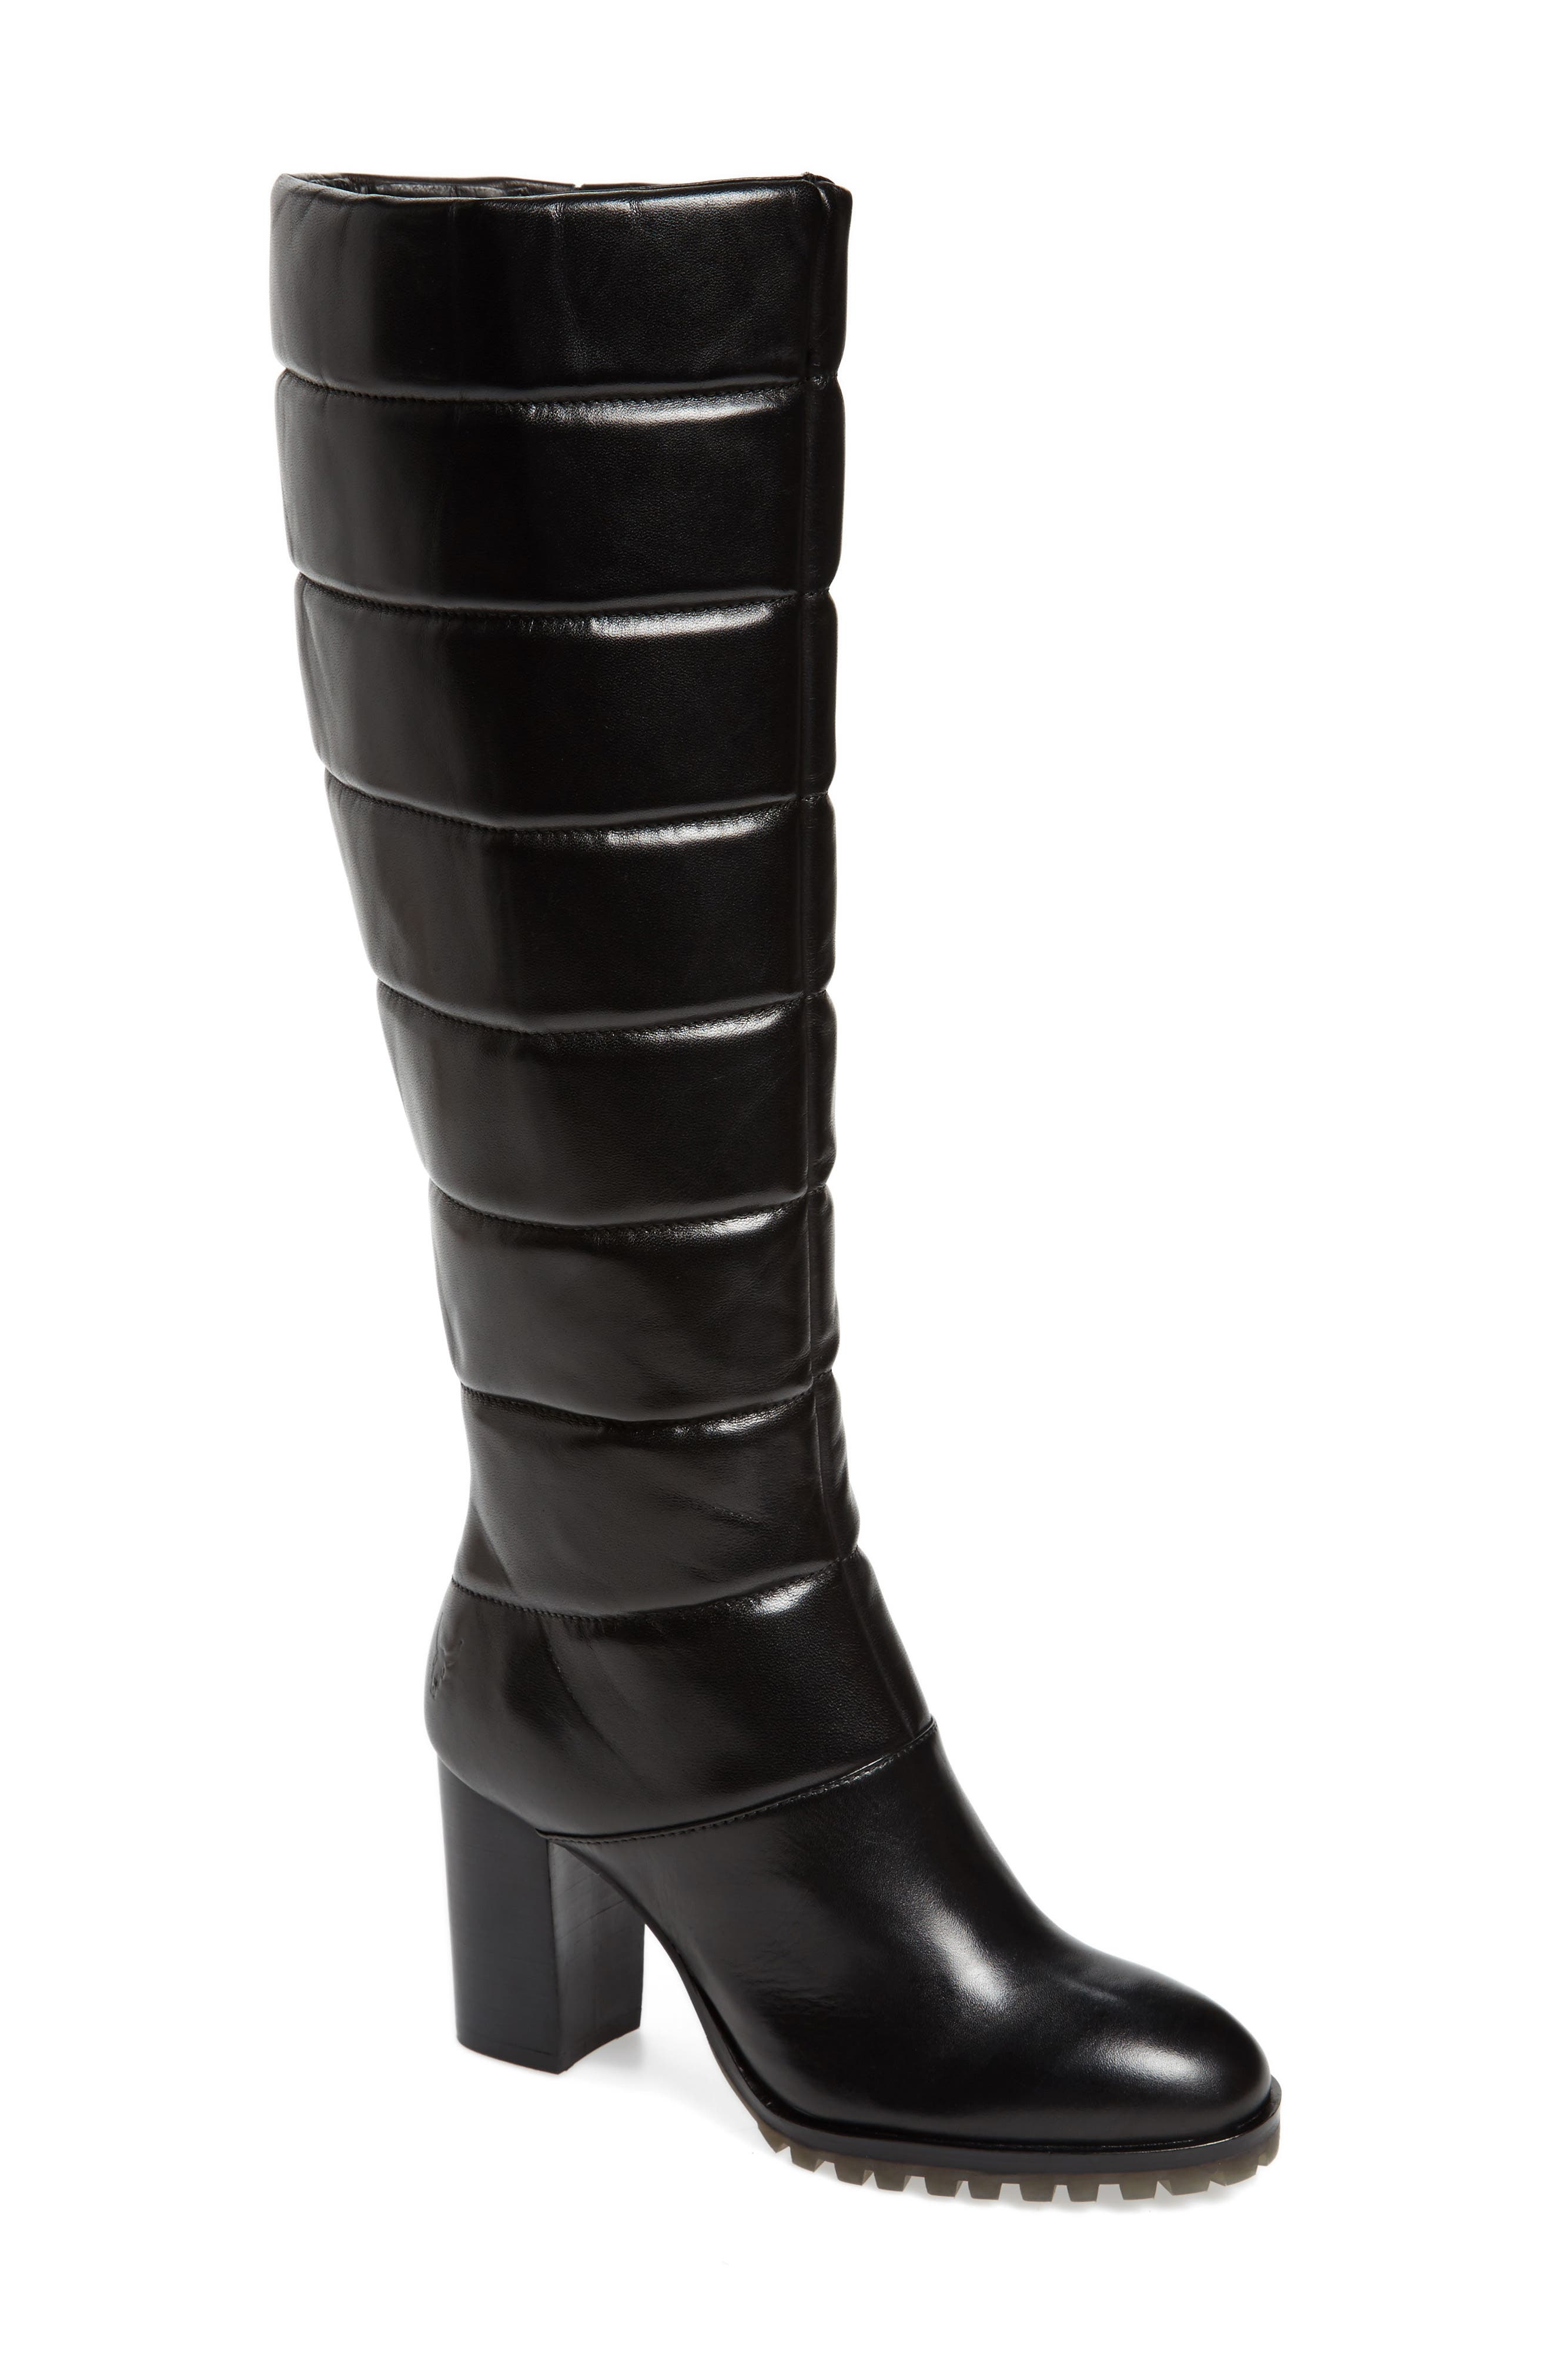 Tropia Knee High Boot,                         Main,                         color, Black Leather